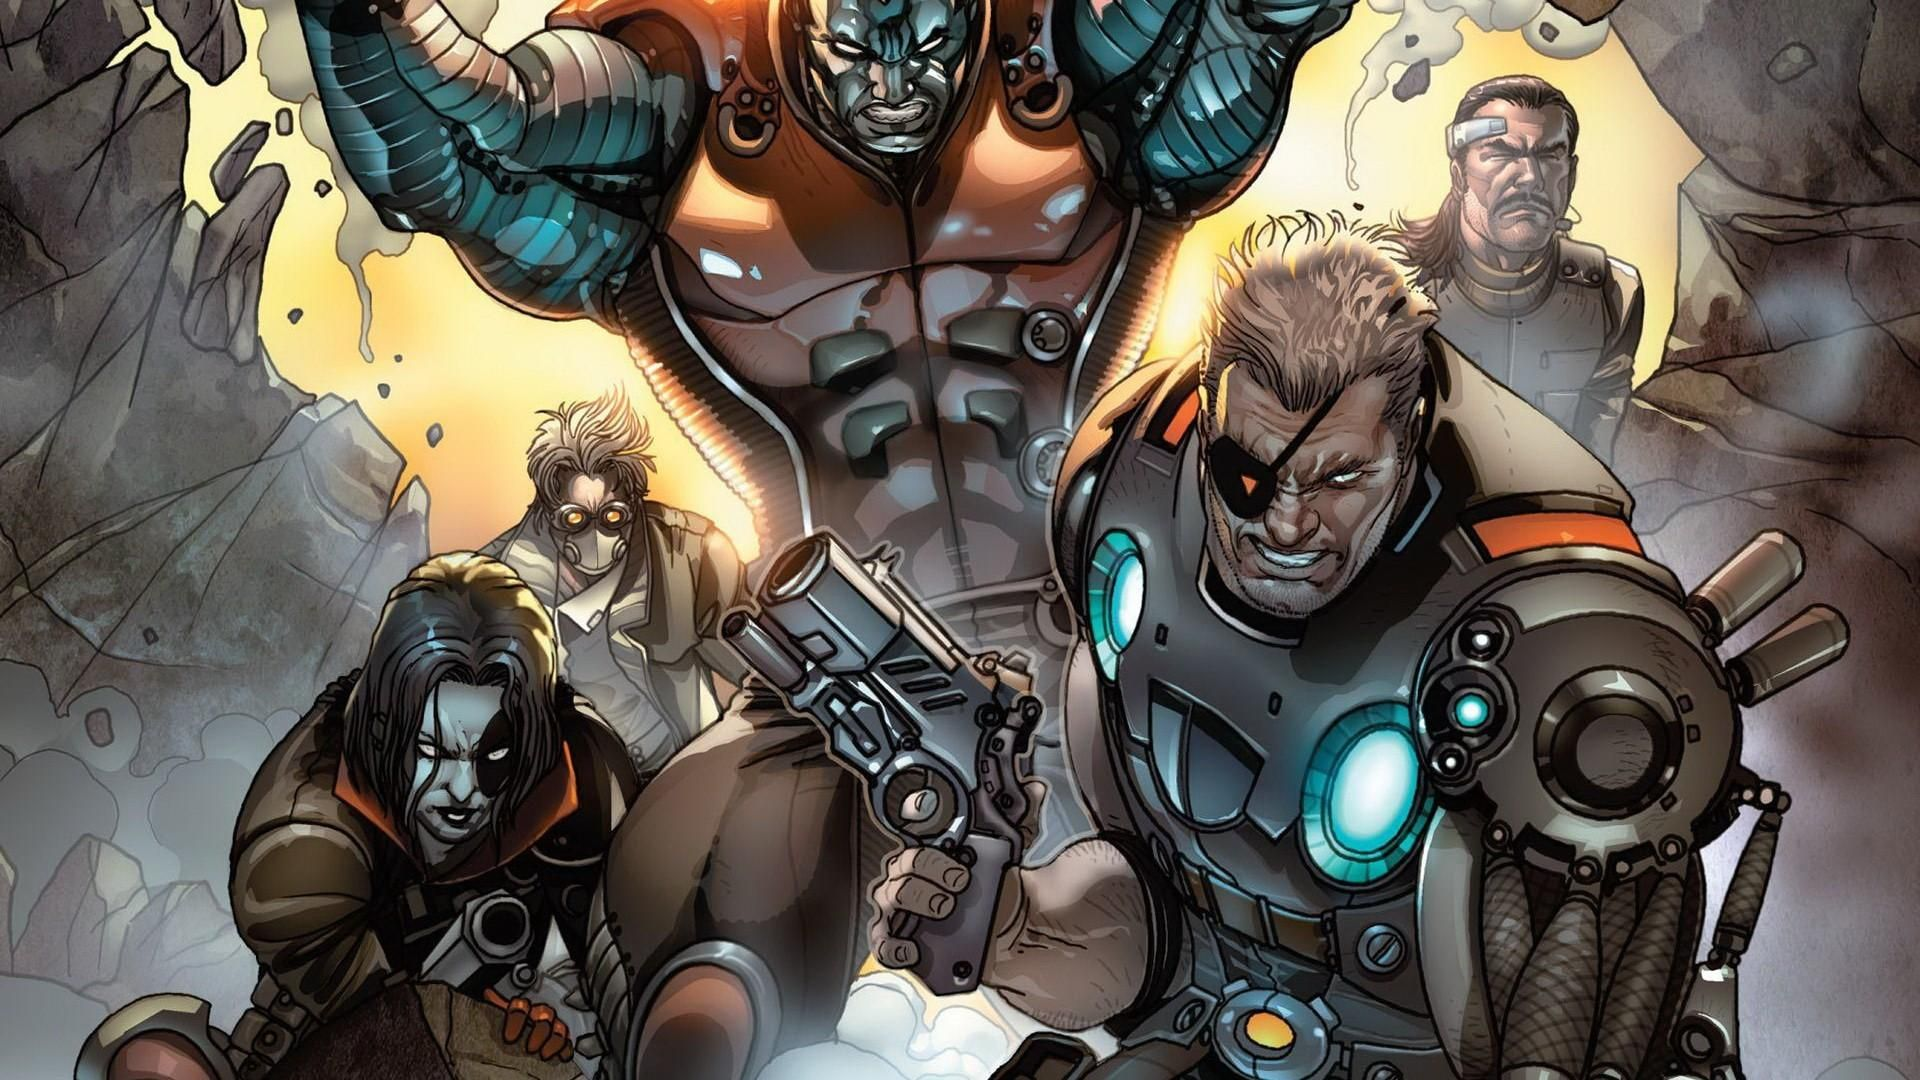 cable the xforce comic wallpapers | hd wallpapers | pinterest